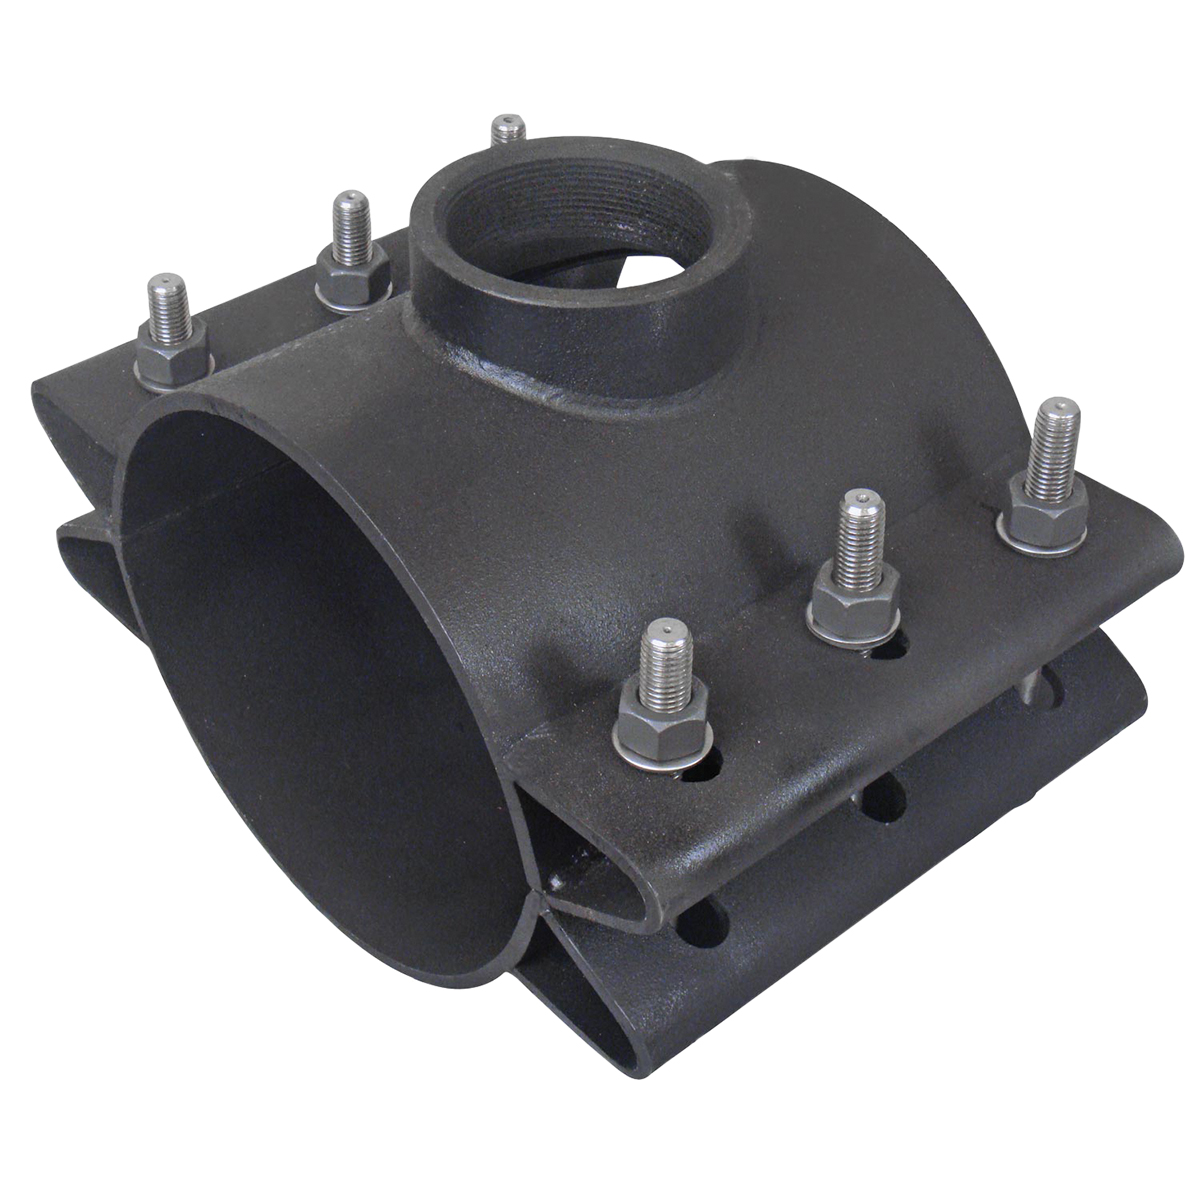 FTS420T - Fabricated steel service saddle.Nominal Sizes6